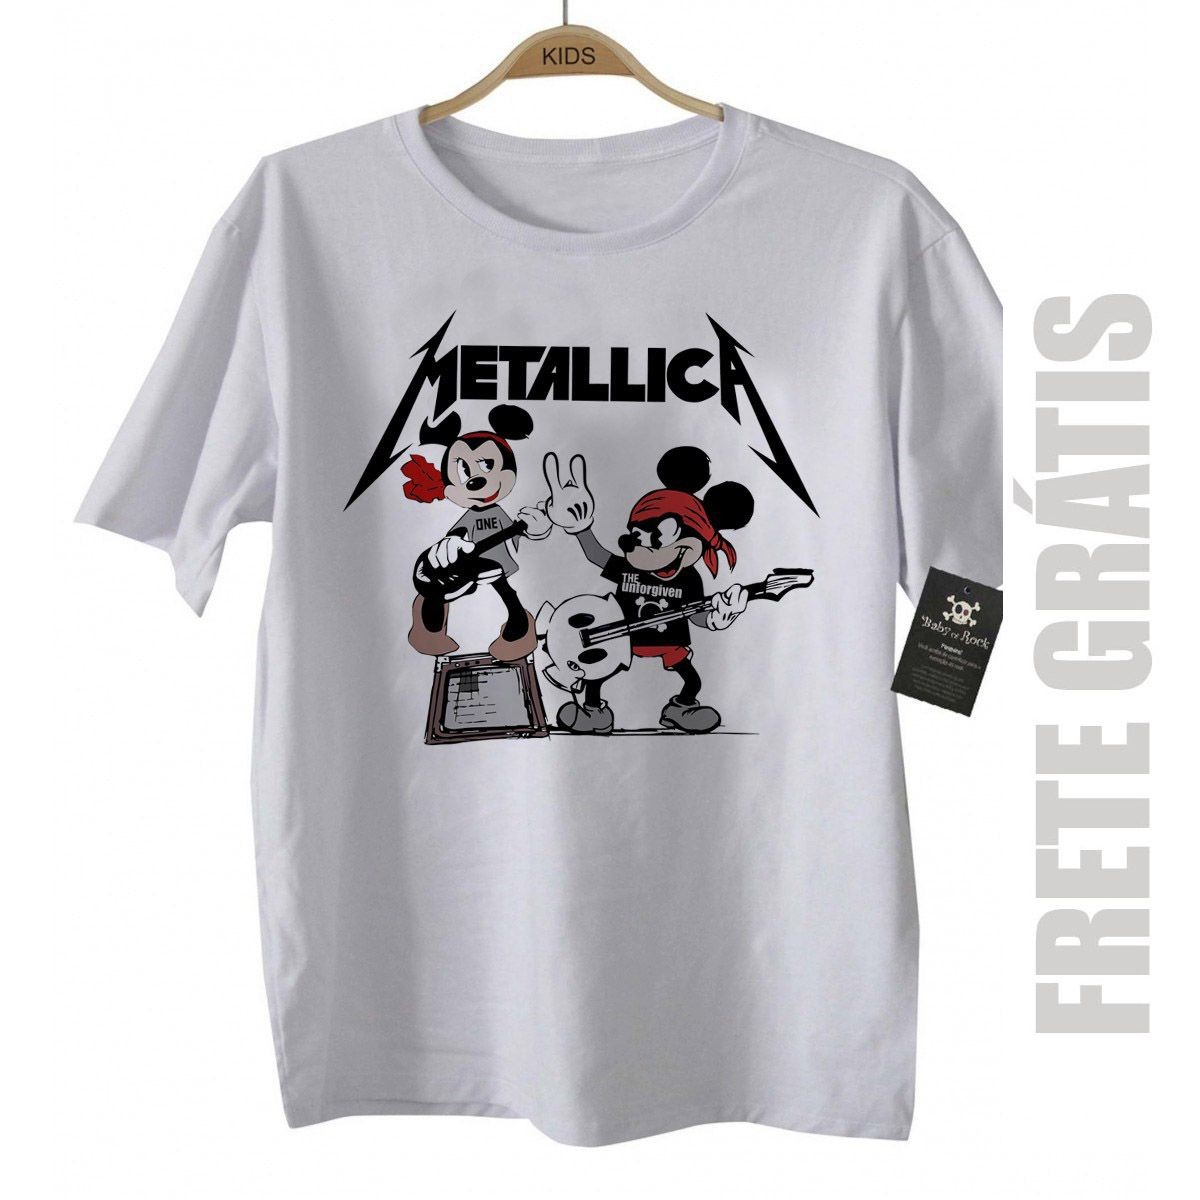 Camiseta de Rock Infantil - Metallica Mickey - White  - Baby Monster - Body Bebe